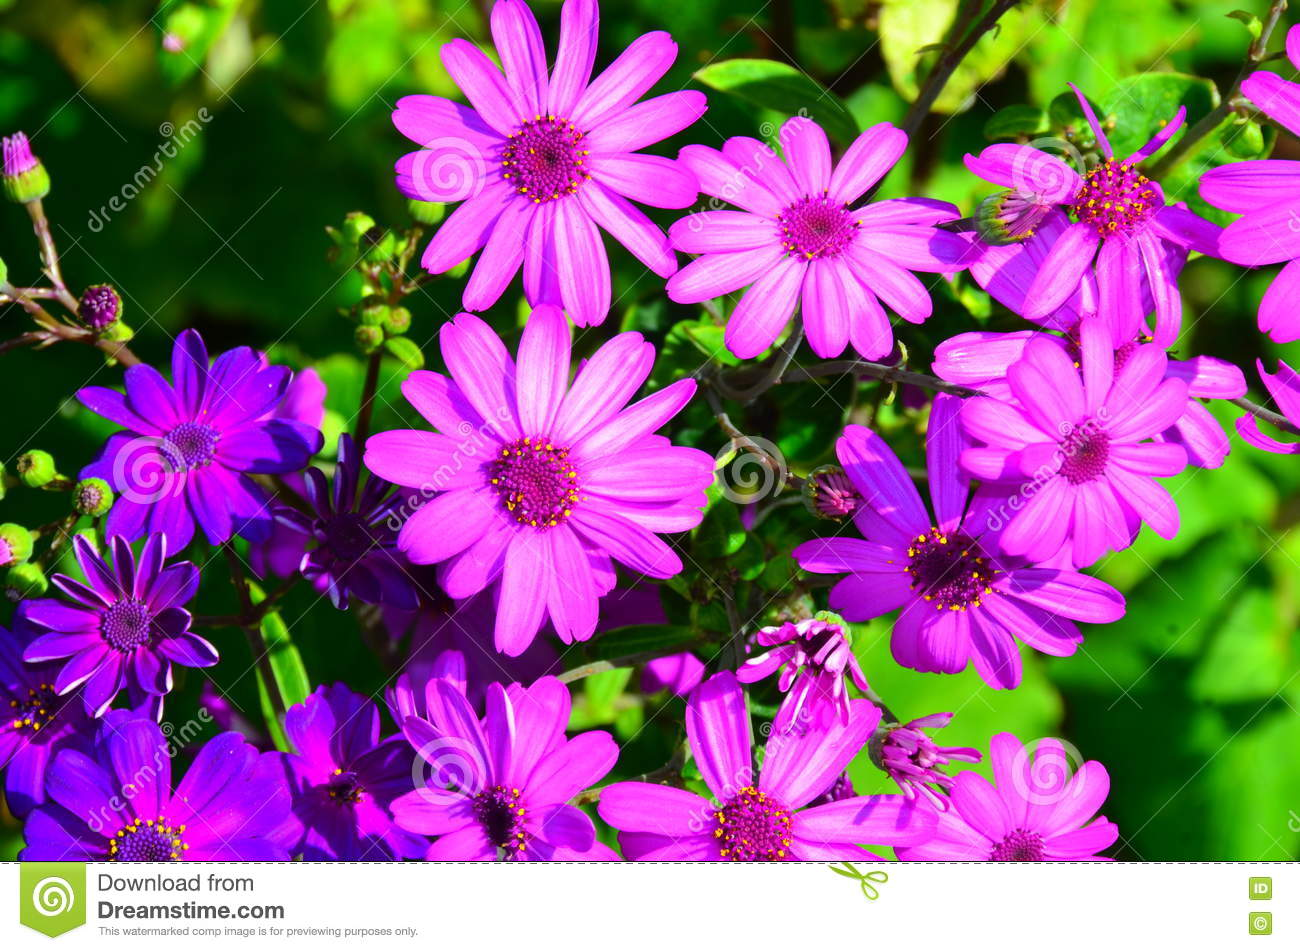 Daisy flower in garden stock photo image of petal plant 74395024 daisy flower in garden izmirmasajfo